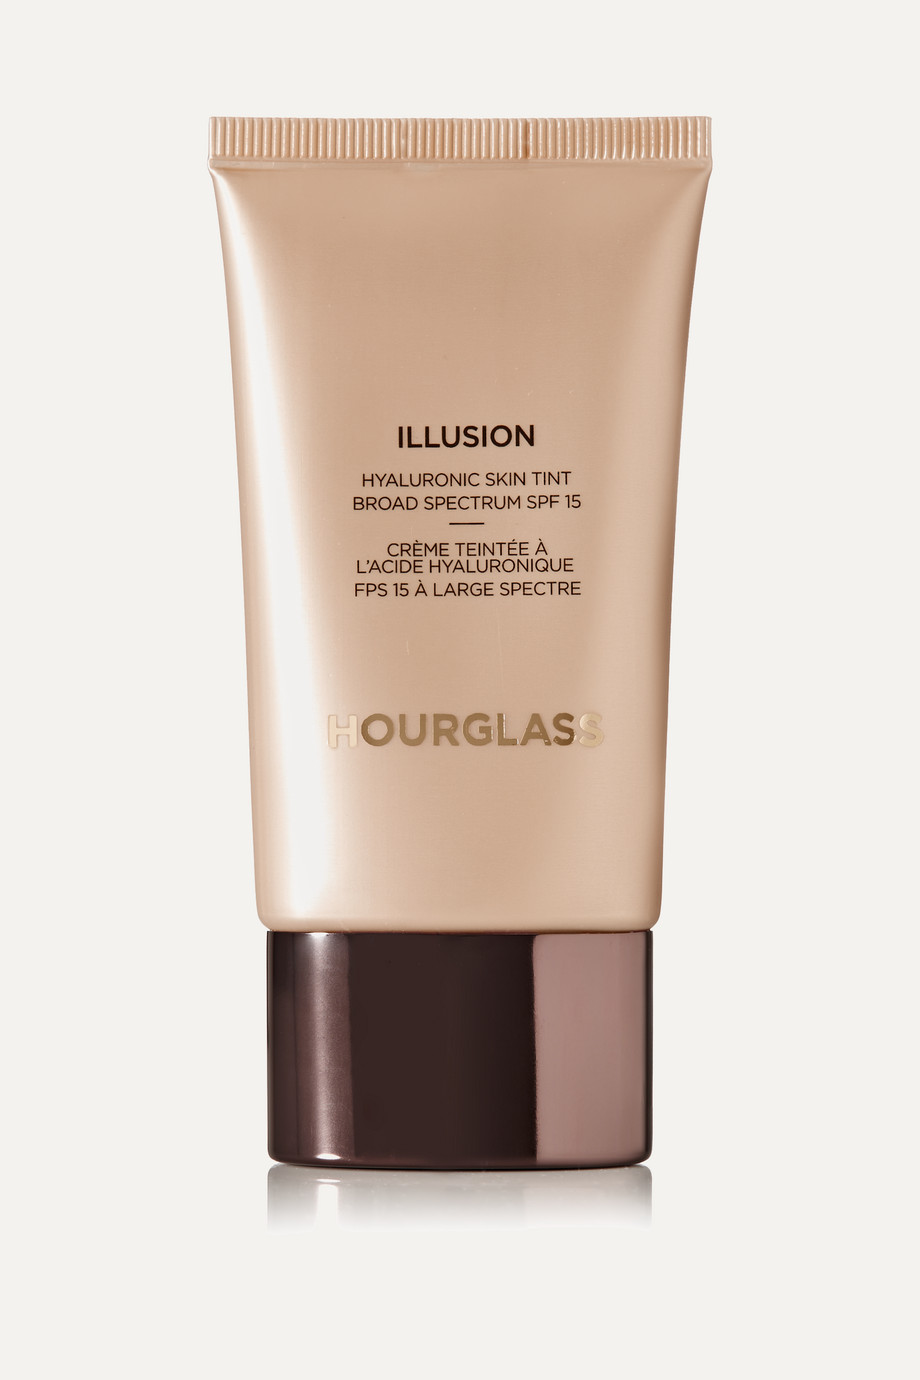 Hourglass Illusion Hyaluronic Skin Tint Spf15 - Ivory, 30ml